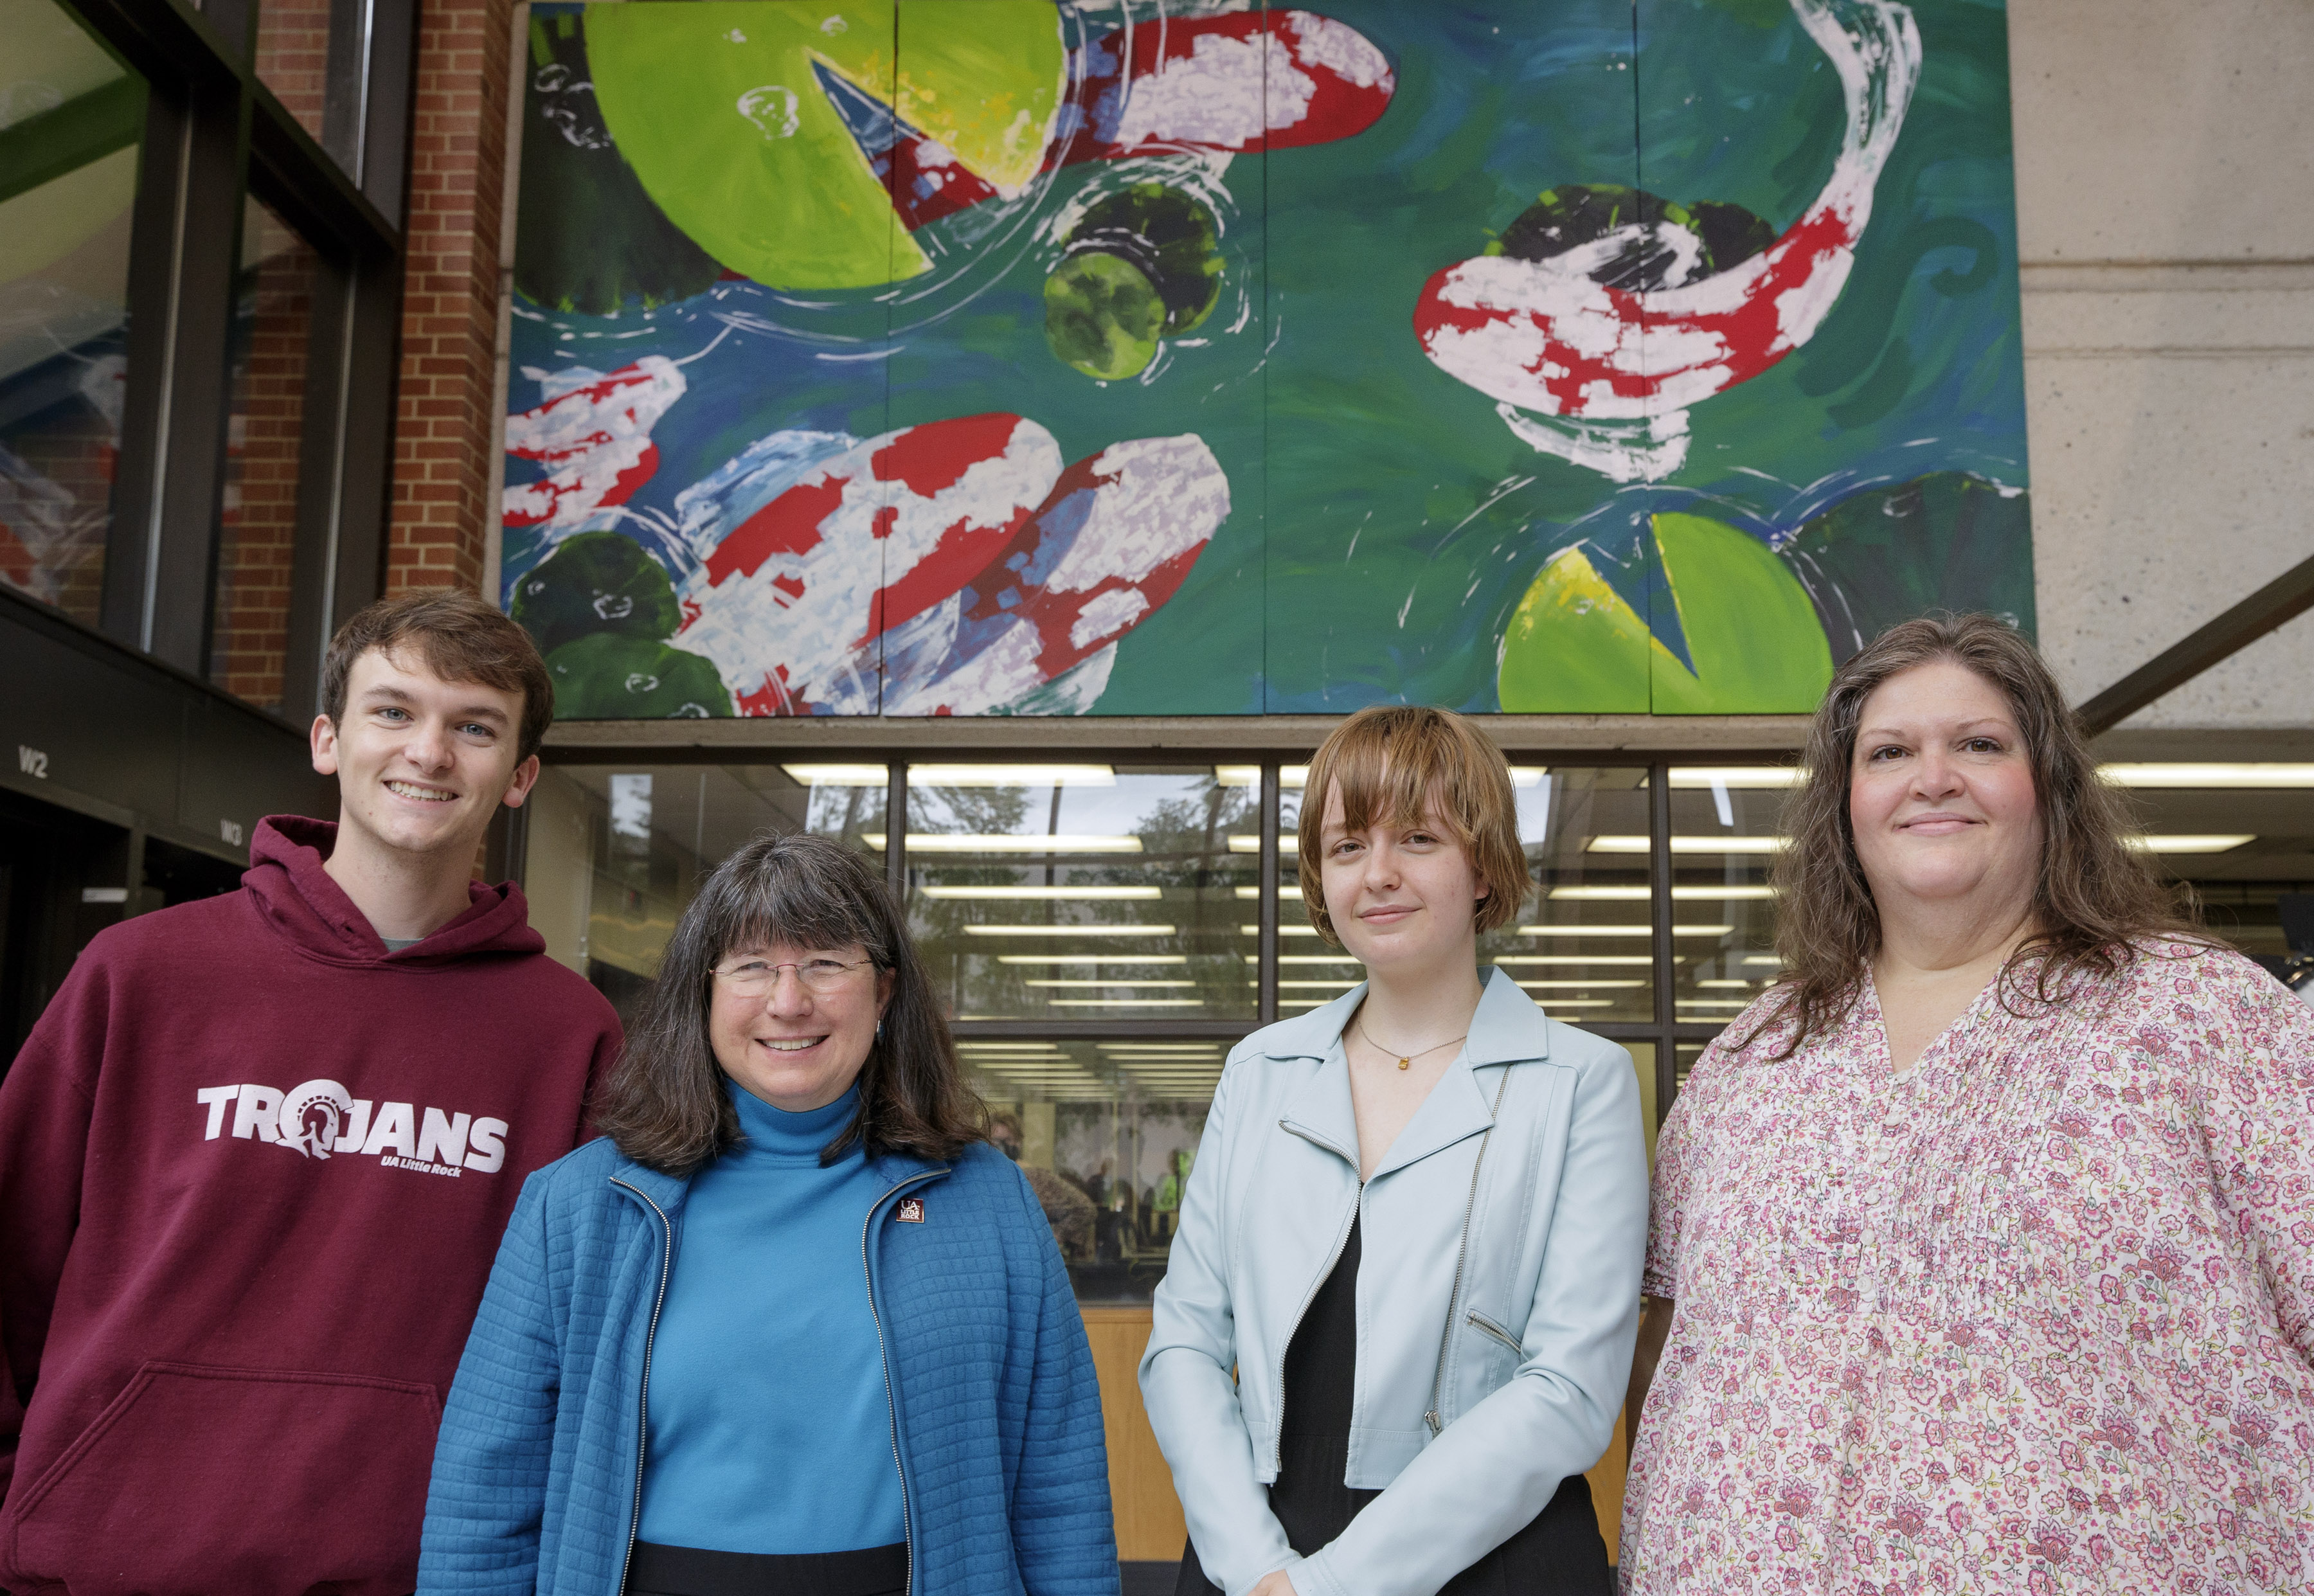 UA Little Rock student artist Emma Chambers, center right, poses in front of her winning mural with Student Government Association president Landon McKay, left, Chancellor Christy Drale center left, and Nancy Hamilton, Faculty Senate Building and Grounds committee member, far right, during a dedication ceremony for the mural at the Ottenheimer Library on campus. Chambers, a junior Bachelor of Fine Arts major with a concentration in painting, won the first student mural competition at the University of Arkansas at Little Rock. The Student Government Association, in conjunction with the Faculty Senate Building and Grounds committee, created the mural contest open to all UA Little Rock students. Chambers received more than 750 votes and $1000 for her design of swimming koi fish.